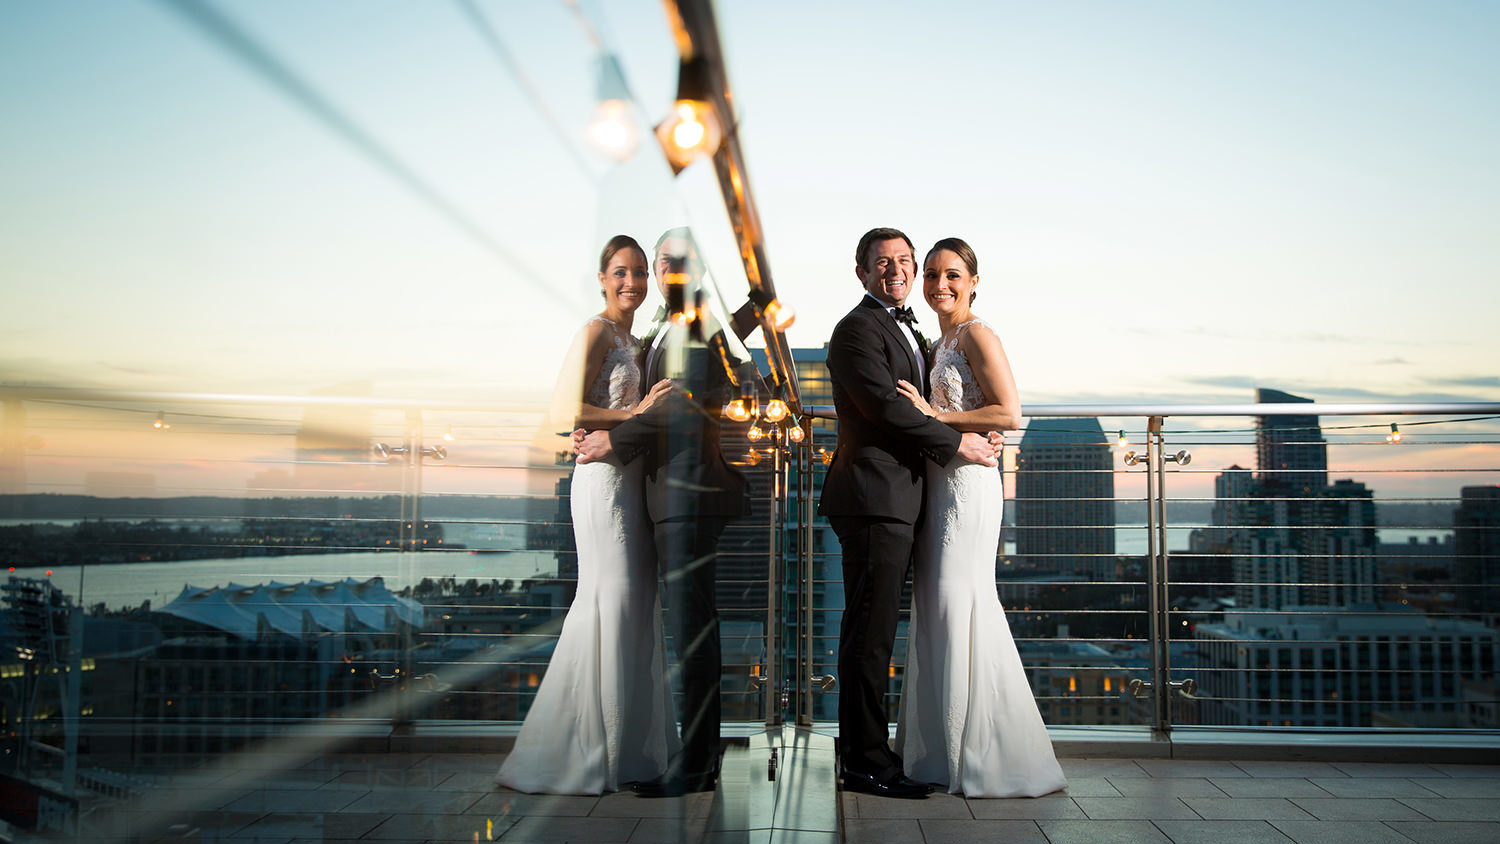 Creative wedding photography angles